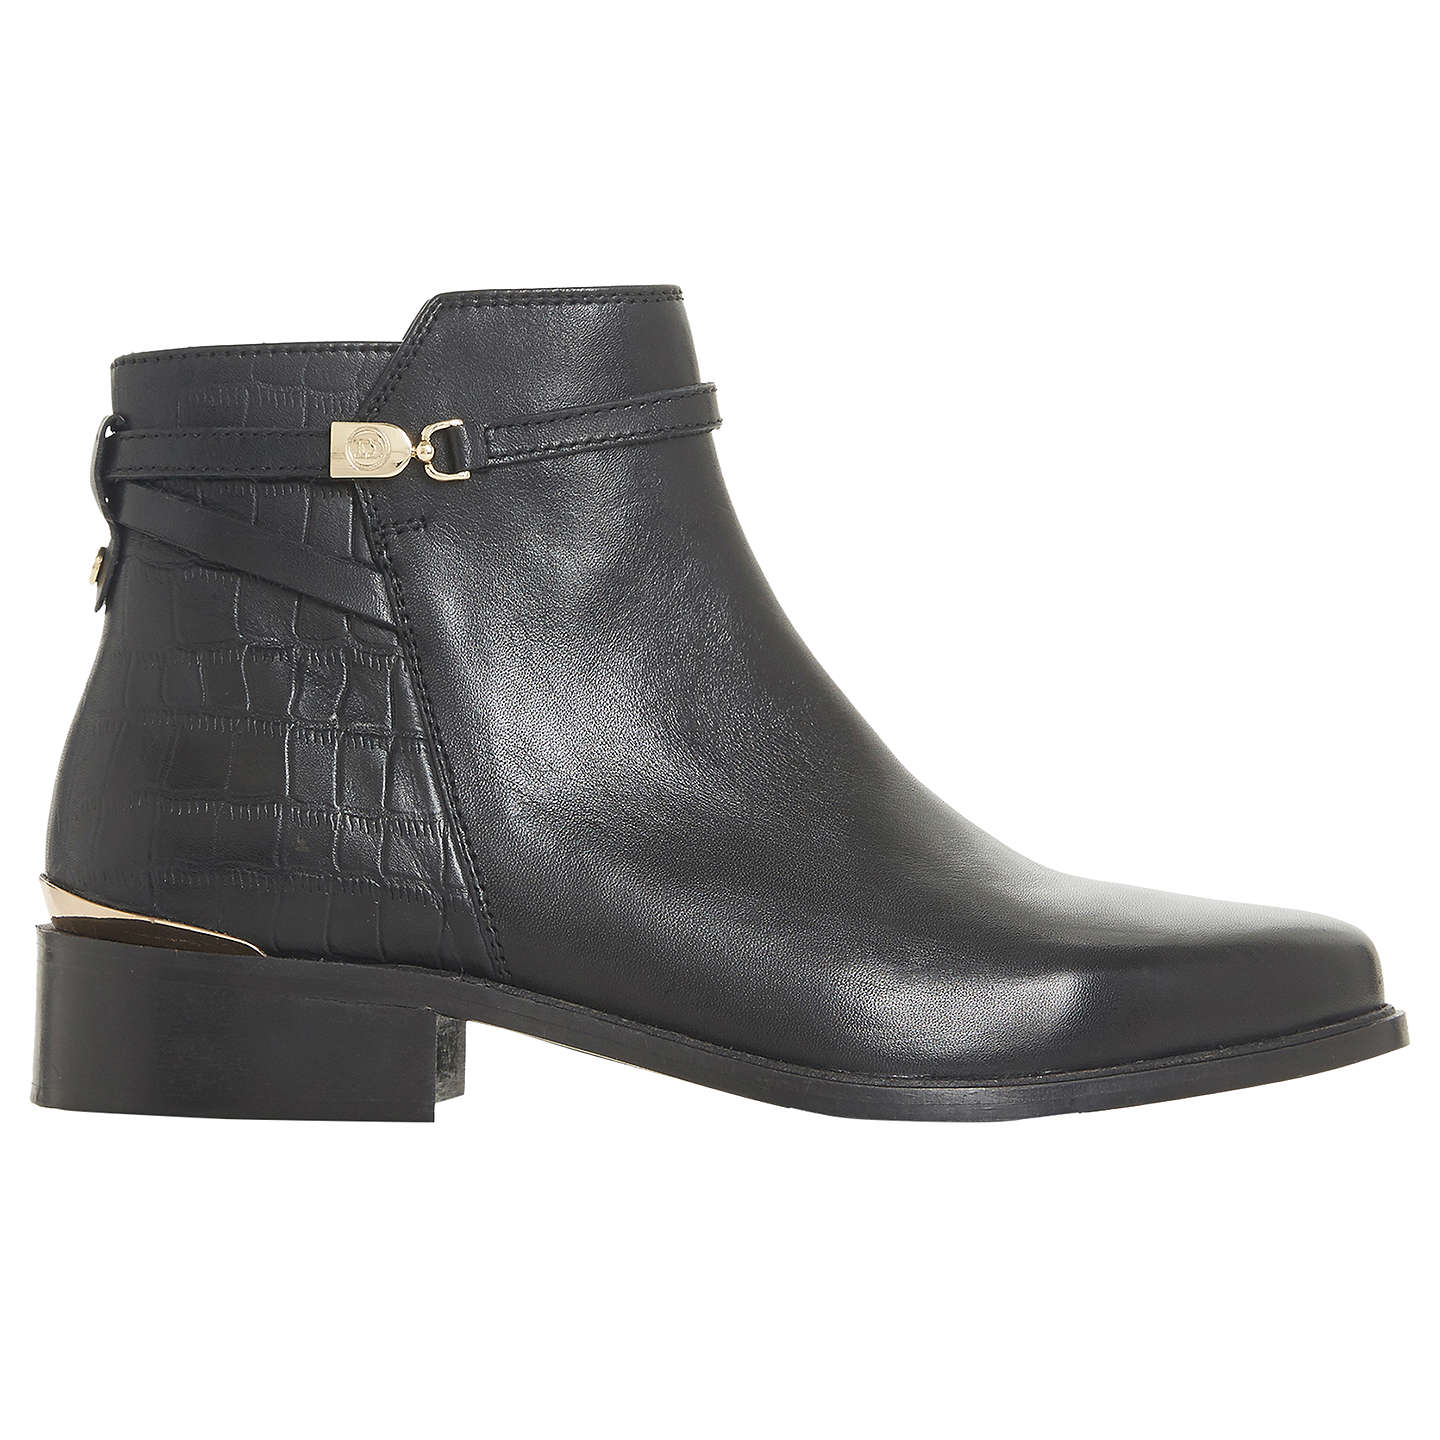 footlocker largest supplier online Black leather 'Peppy' ankle boots pay with paypal cheap online the cheapest cheap price 5cBVe6